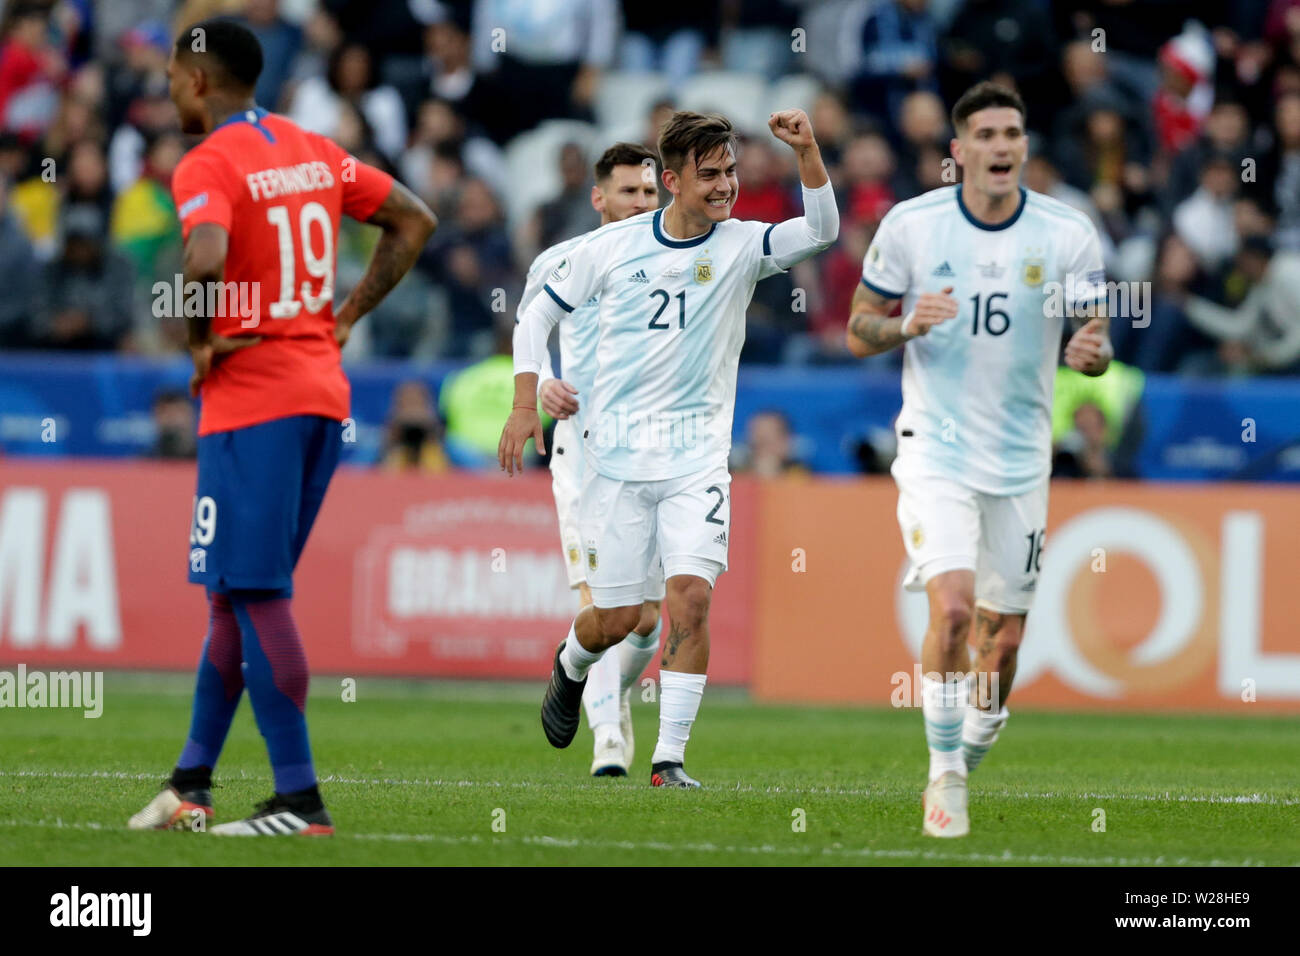 Sao Paulo, Brazil. 6th July, 2019. Argentina's Paulo Dybala (2nd R) celebrates after scoring during the 3rd place match of Copa America 2019 between Argentina and Chile in Sao Paulo, Brazil, July 6, 2019. Credit: Francisco Canedo/Xinhua/Alamy Live News - Stock Image